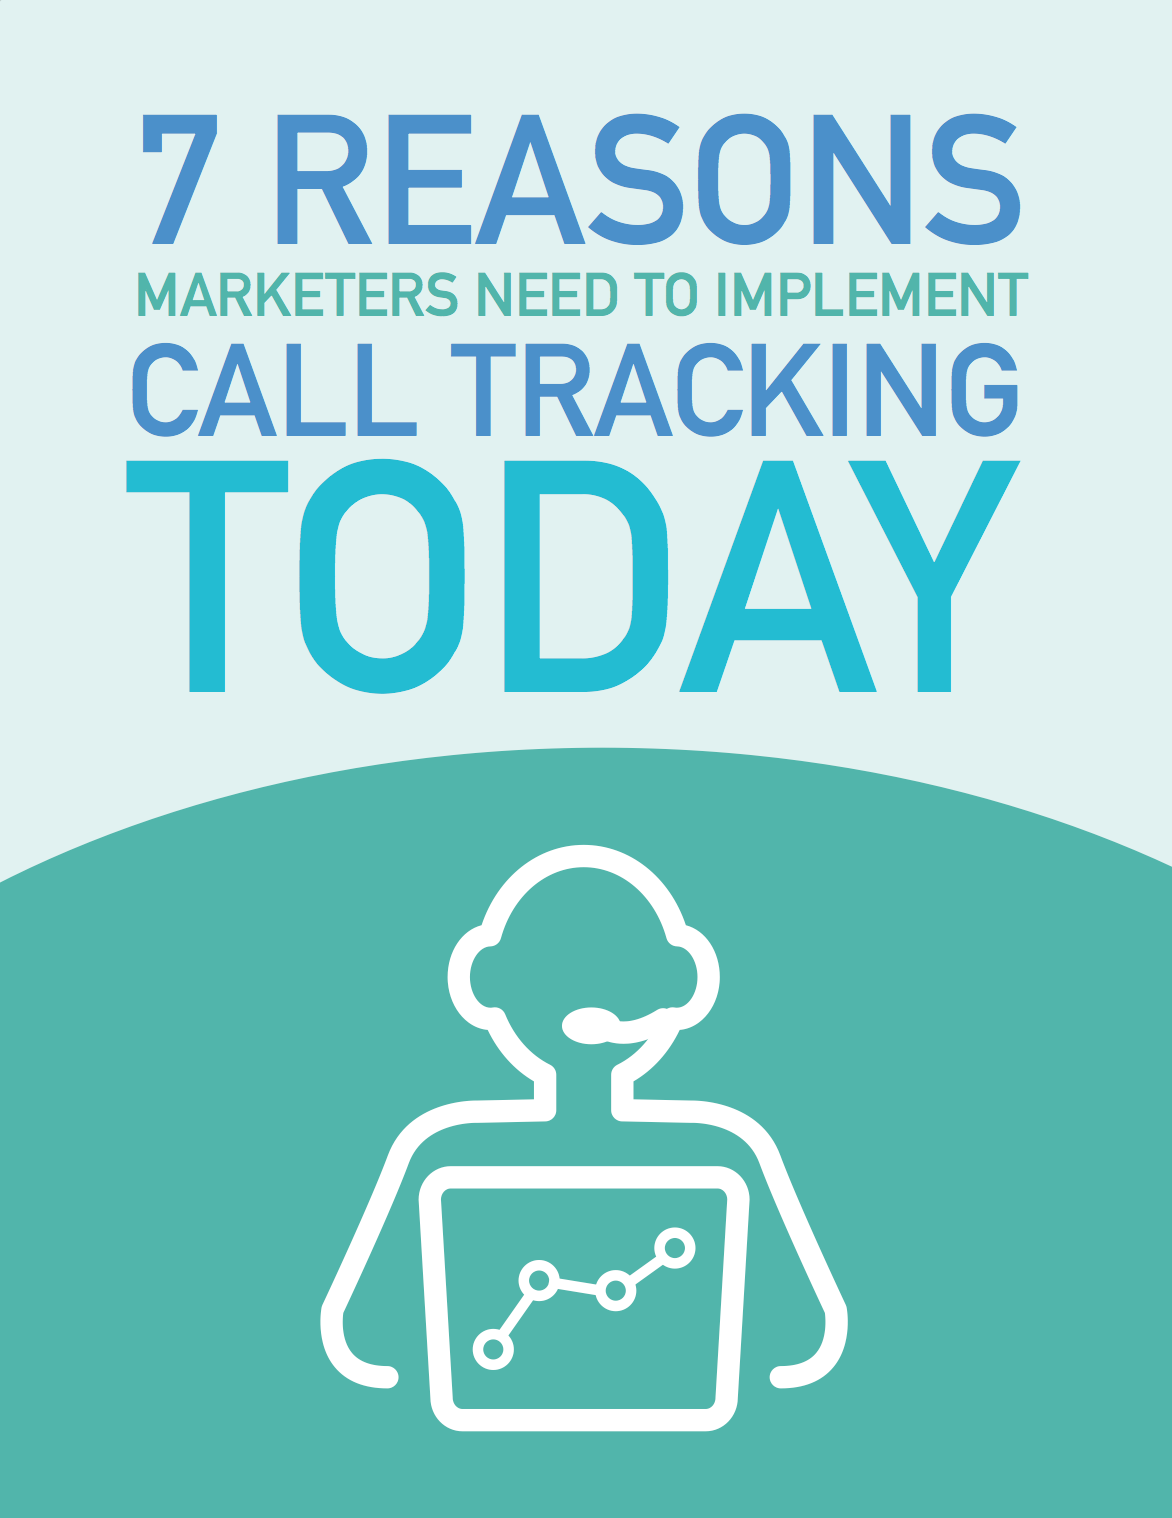 7 Reasons Marketers Need To Implement Call Tracking Today white paper